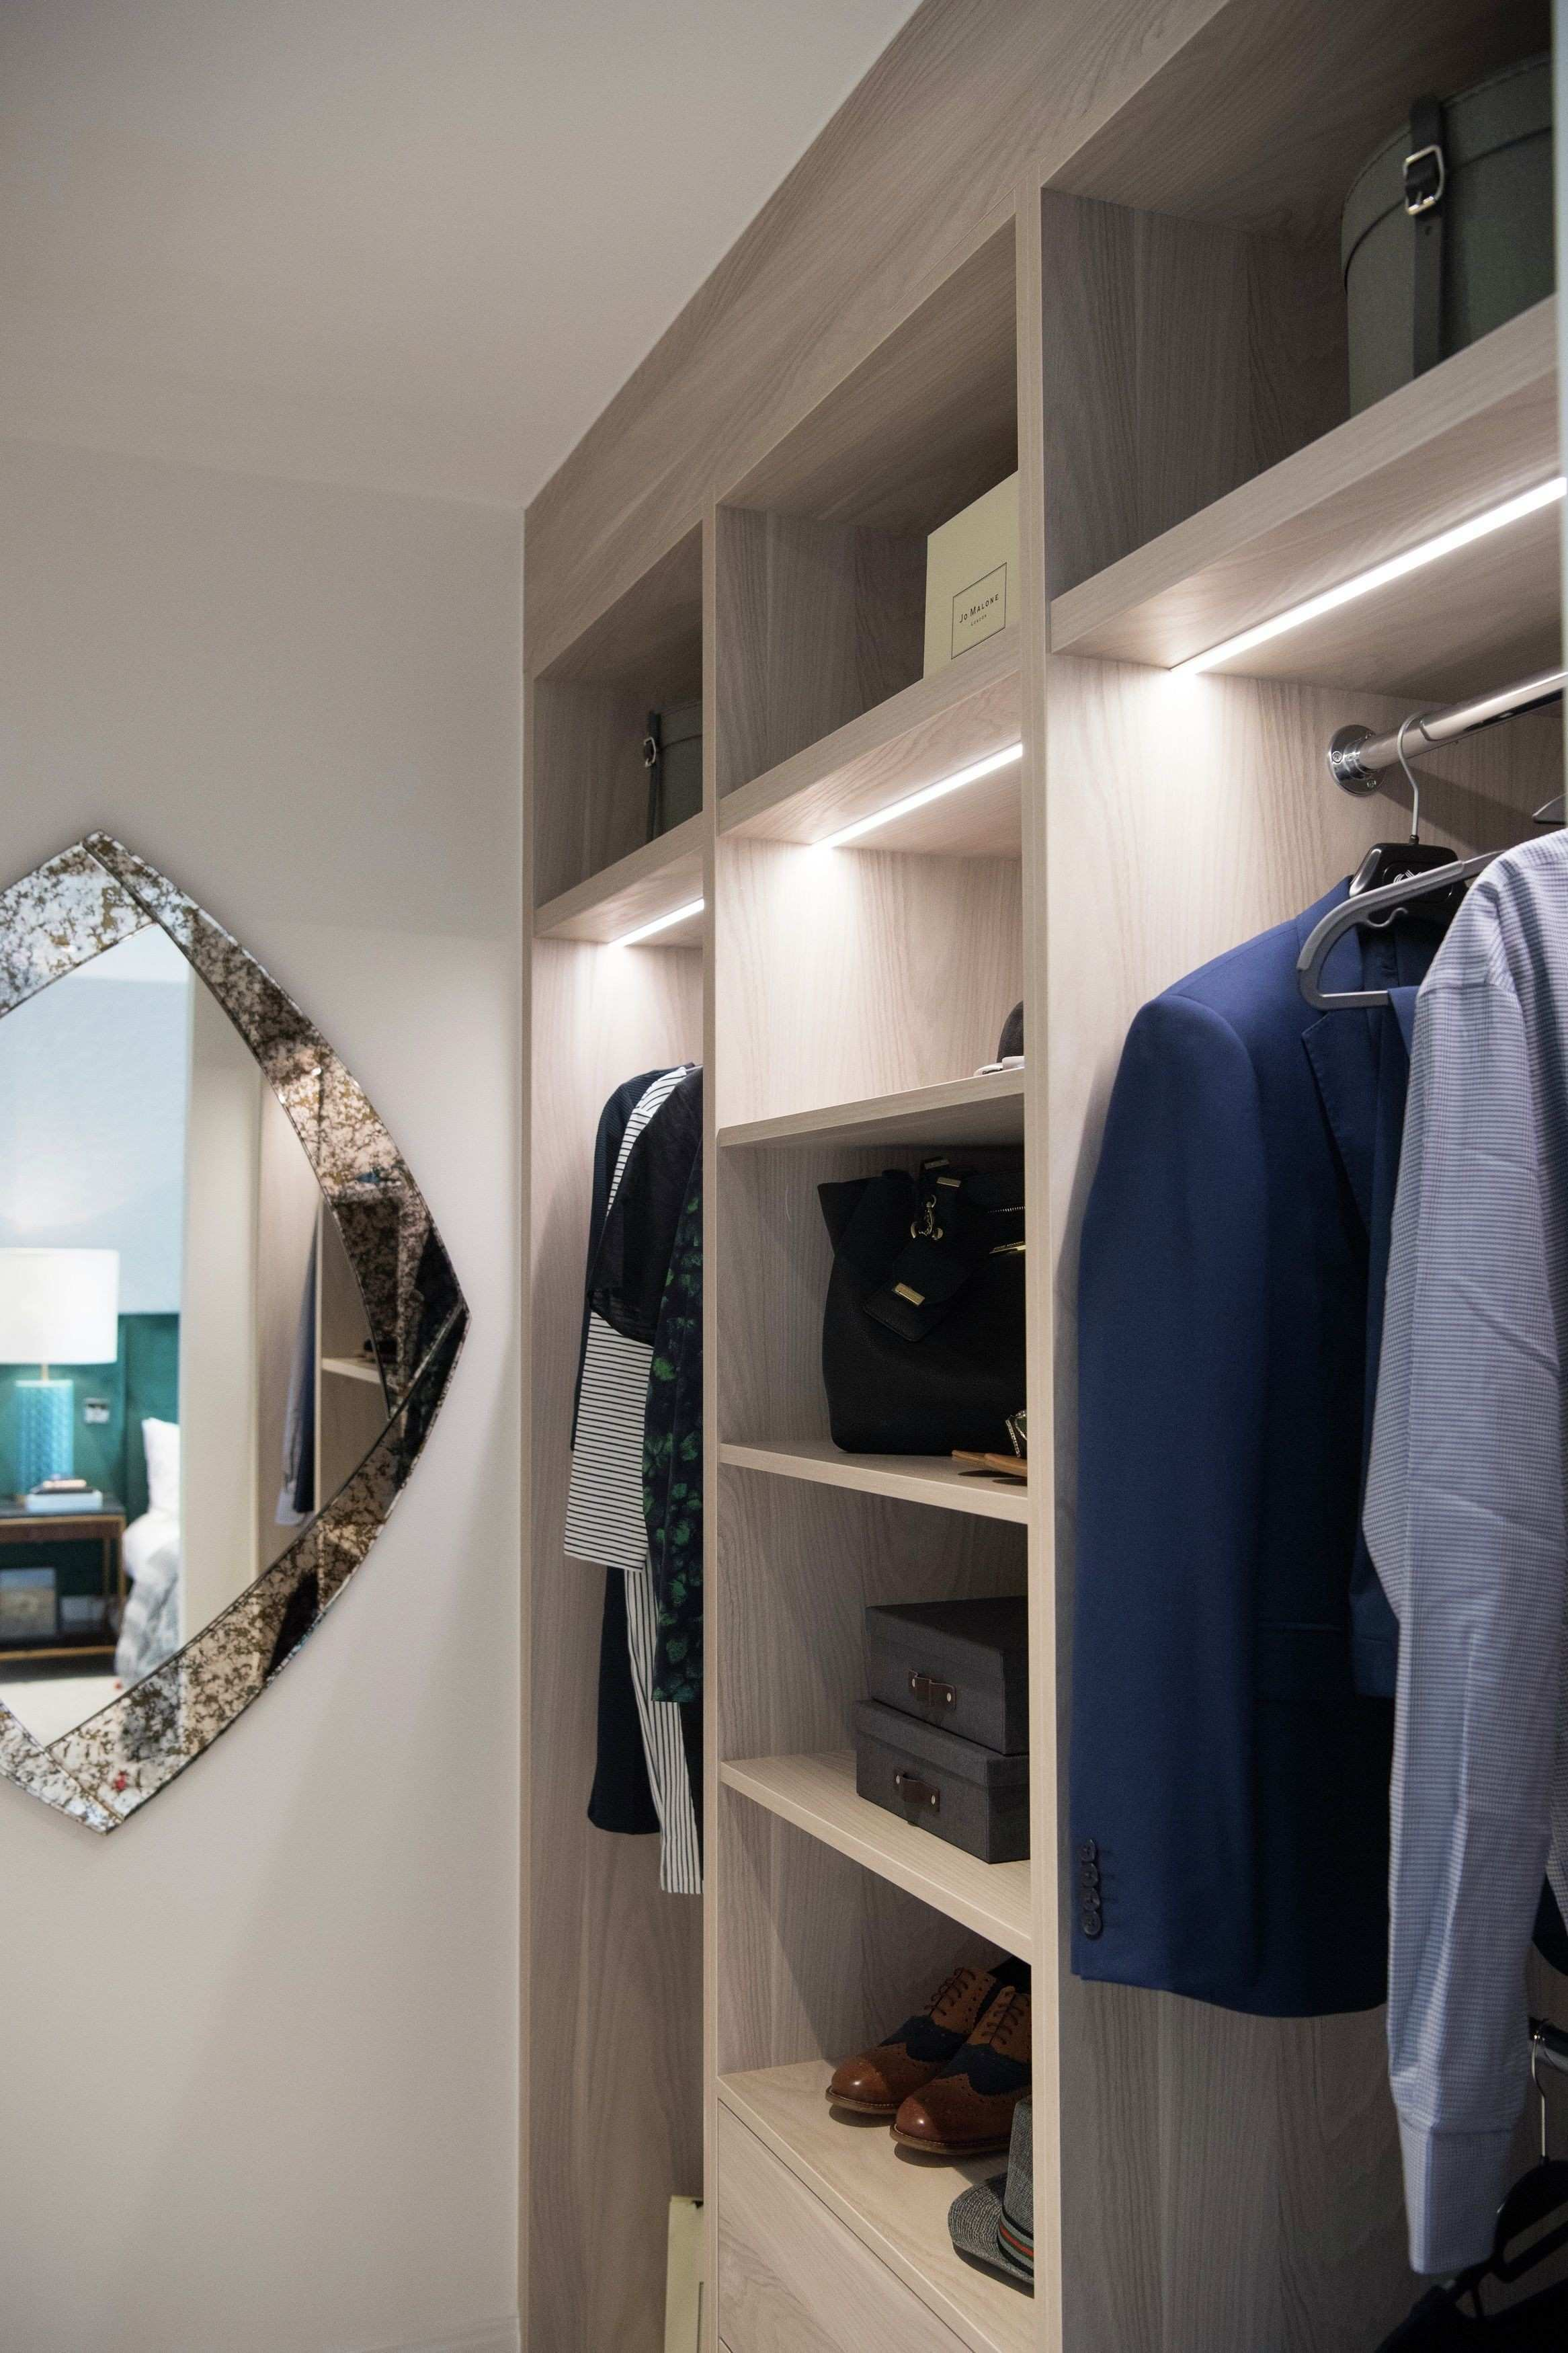 Plenty of space to organise your clothing with this open fitted